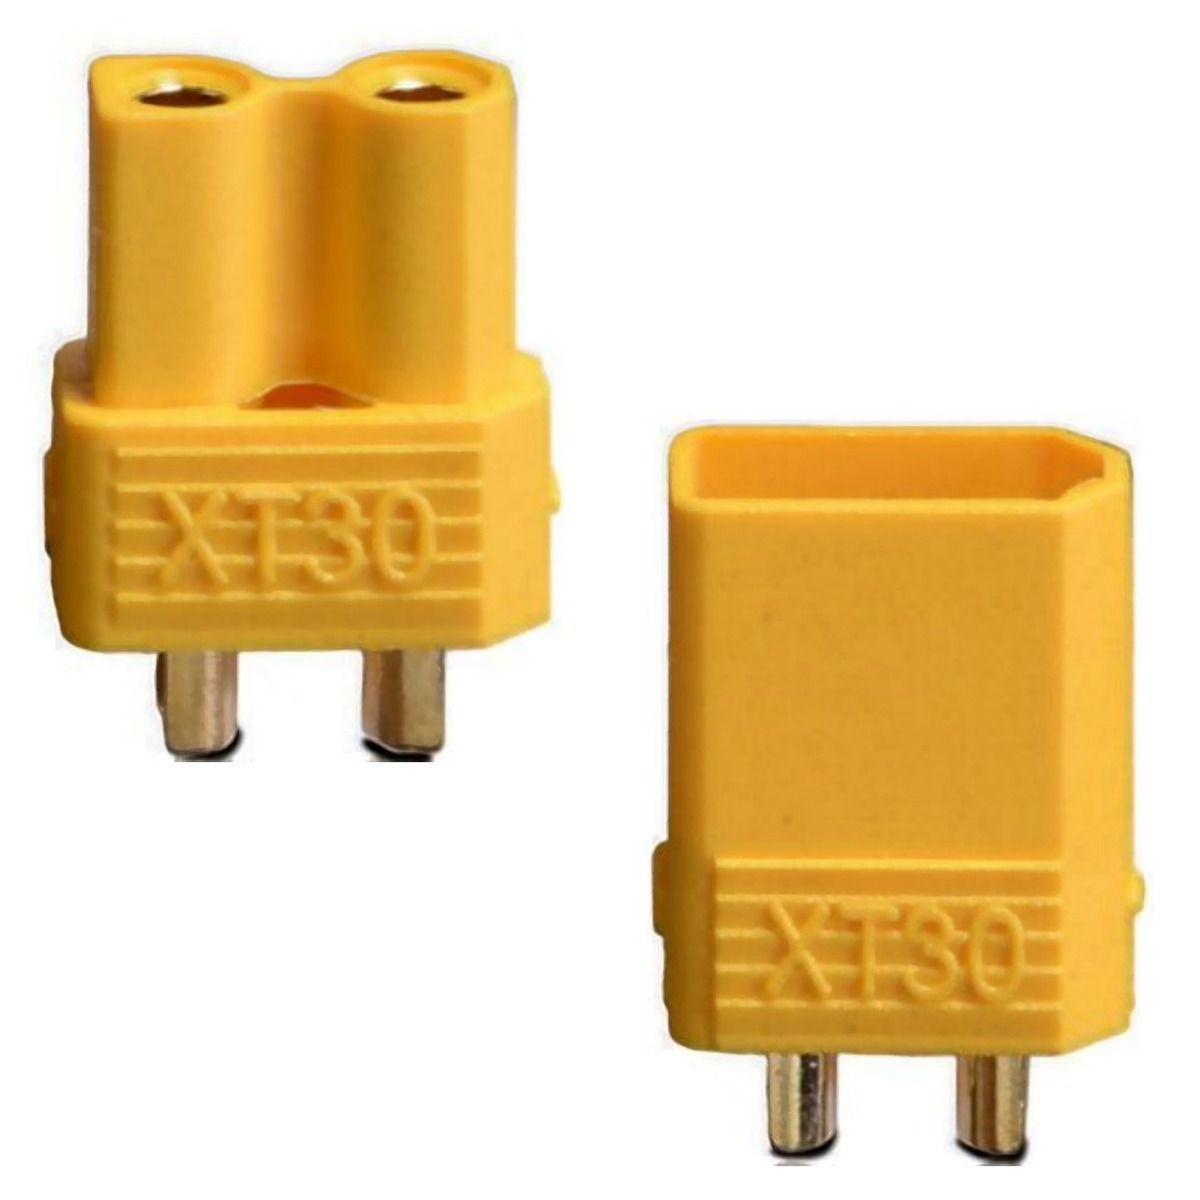 XT30 Connector Set with Heat shrink (2prs)